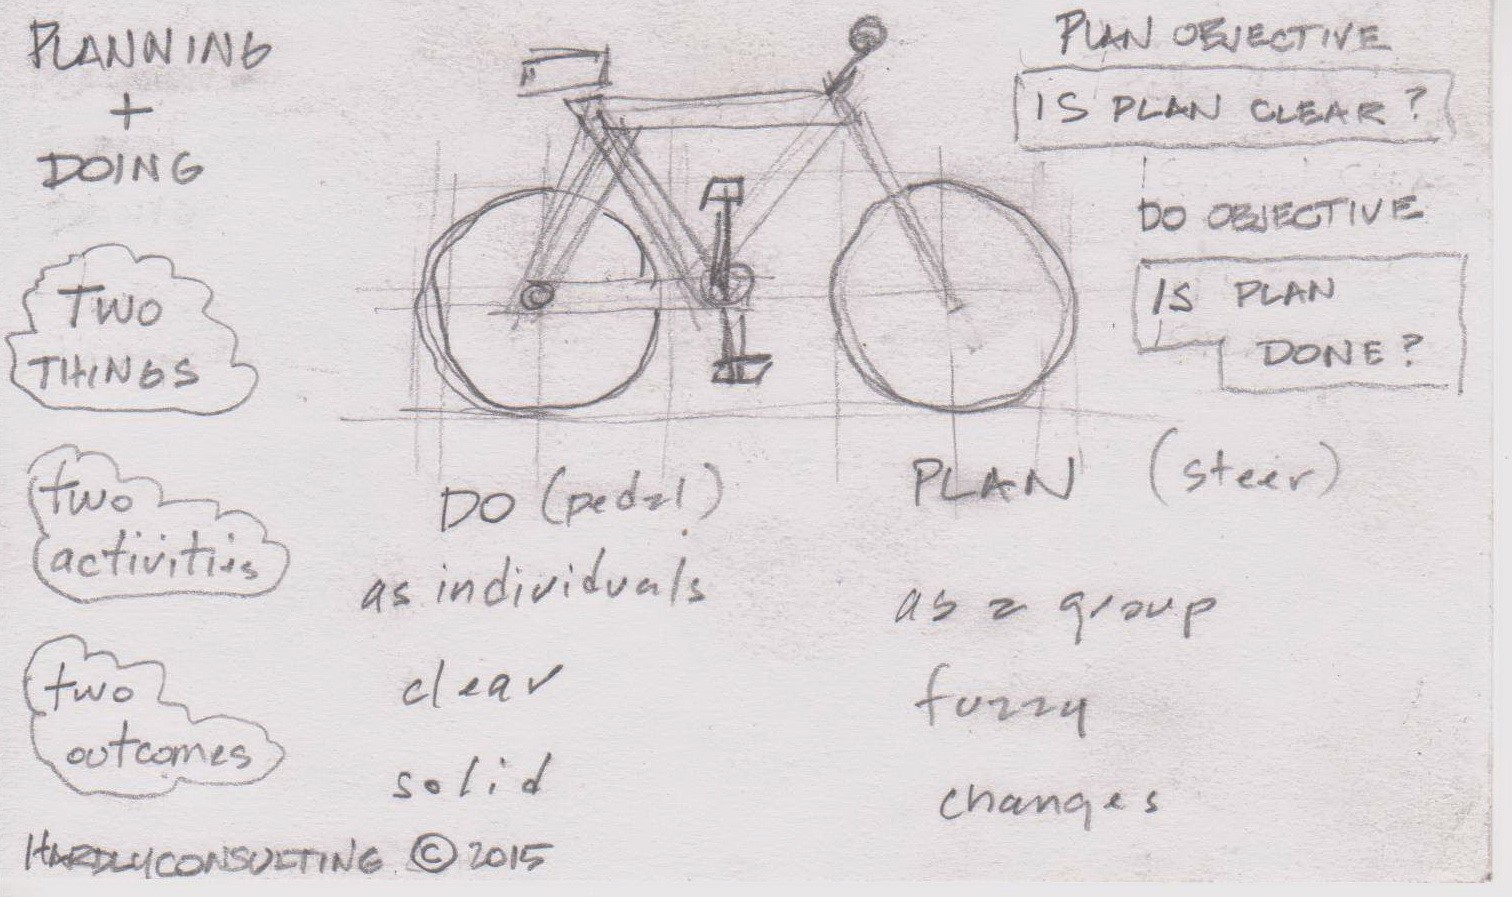 Goal setting is like a bicycle